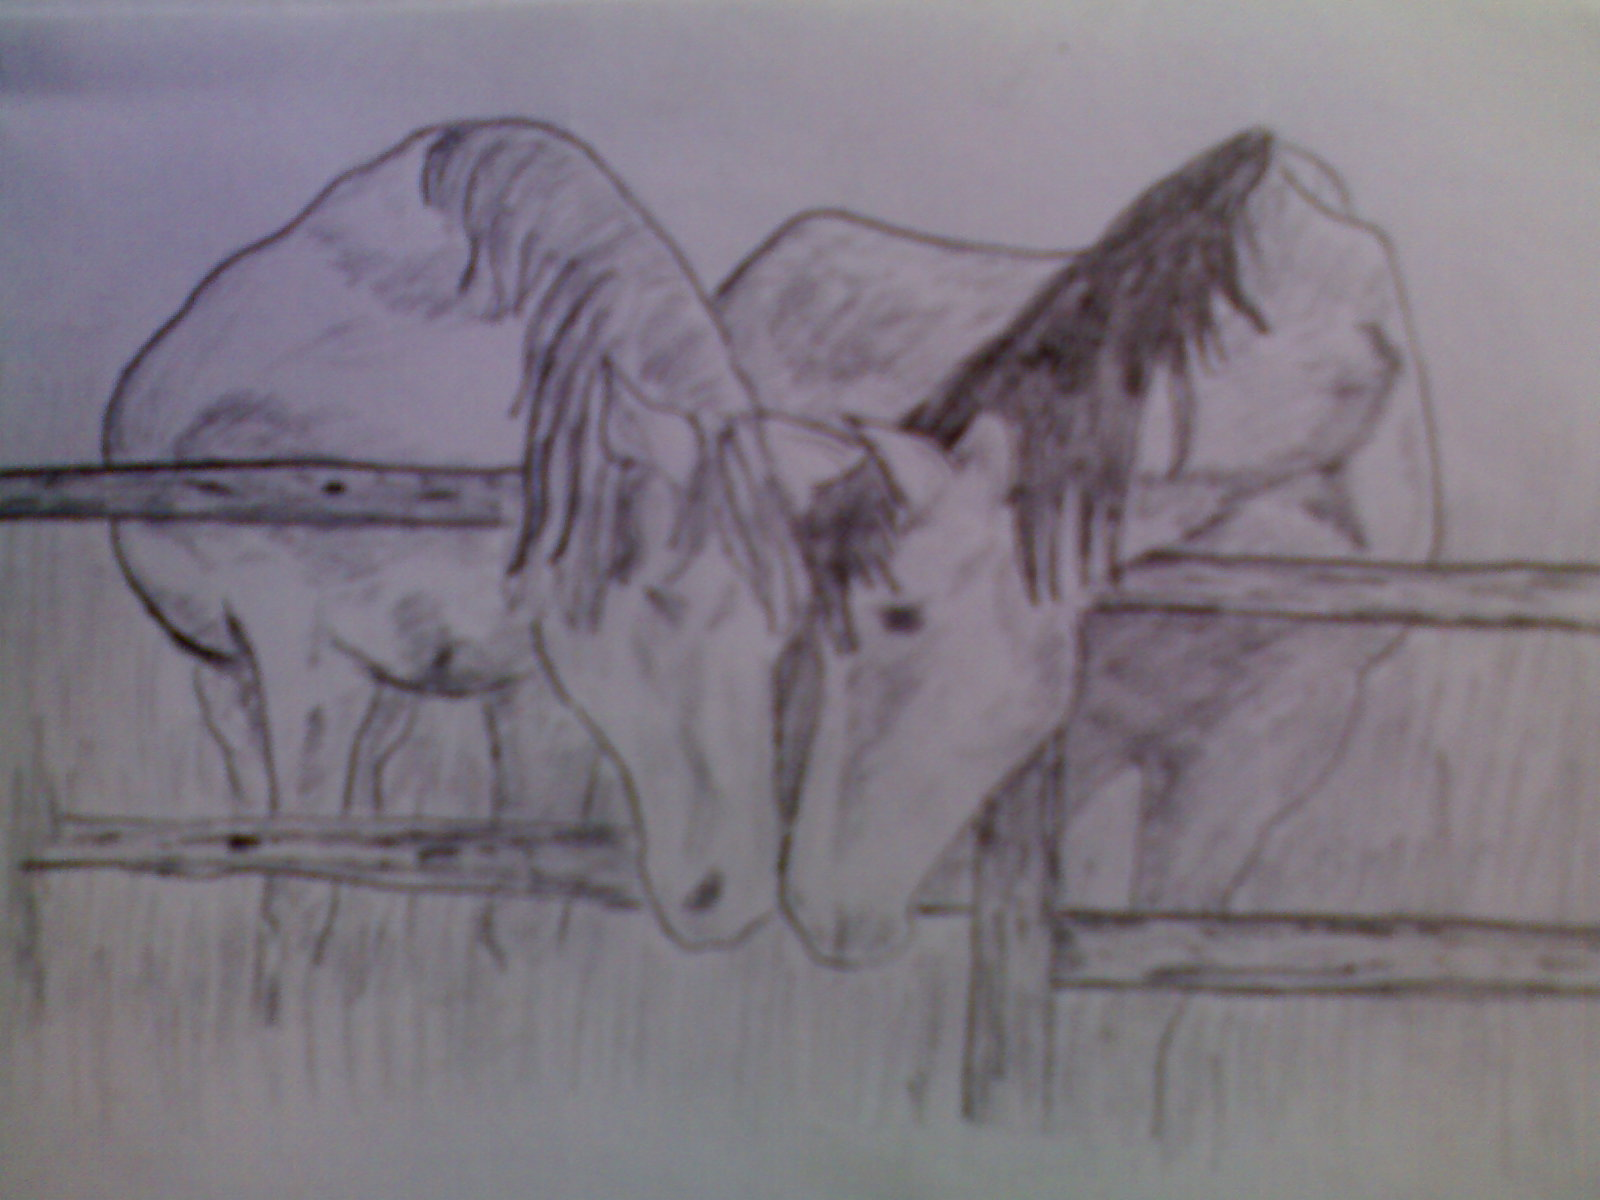 Sketch of horse head drawing of a horse